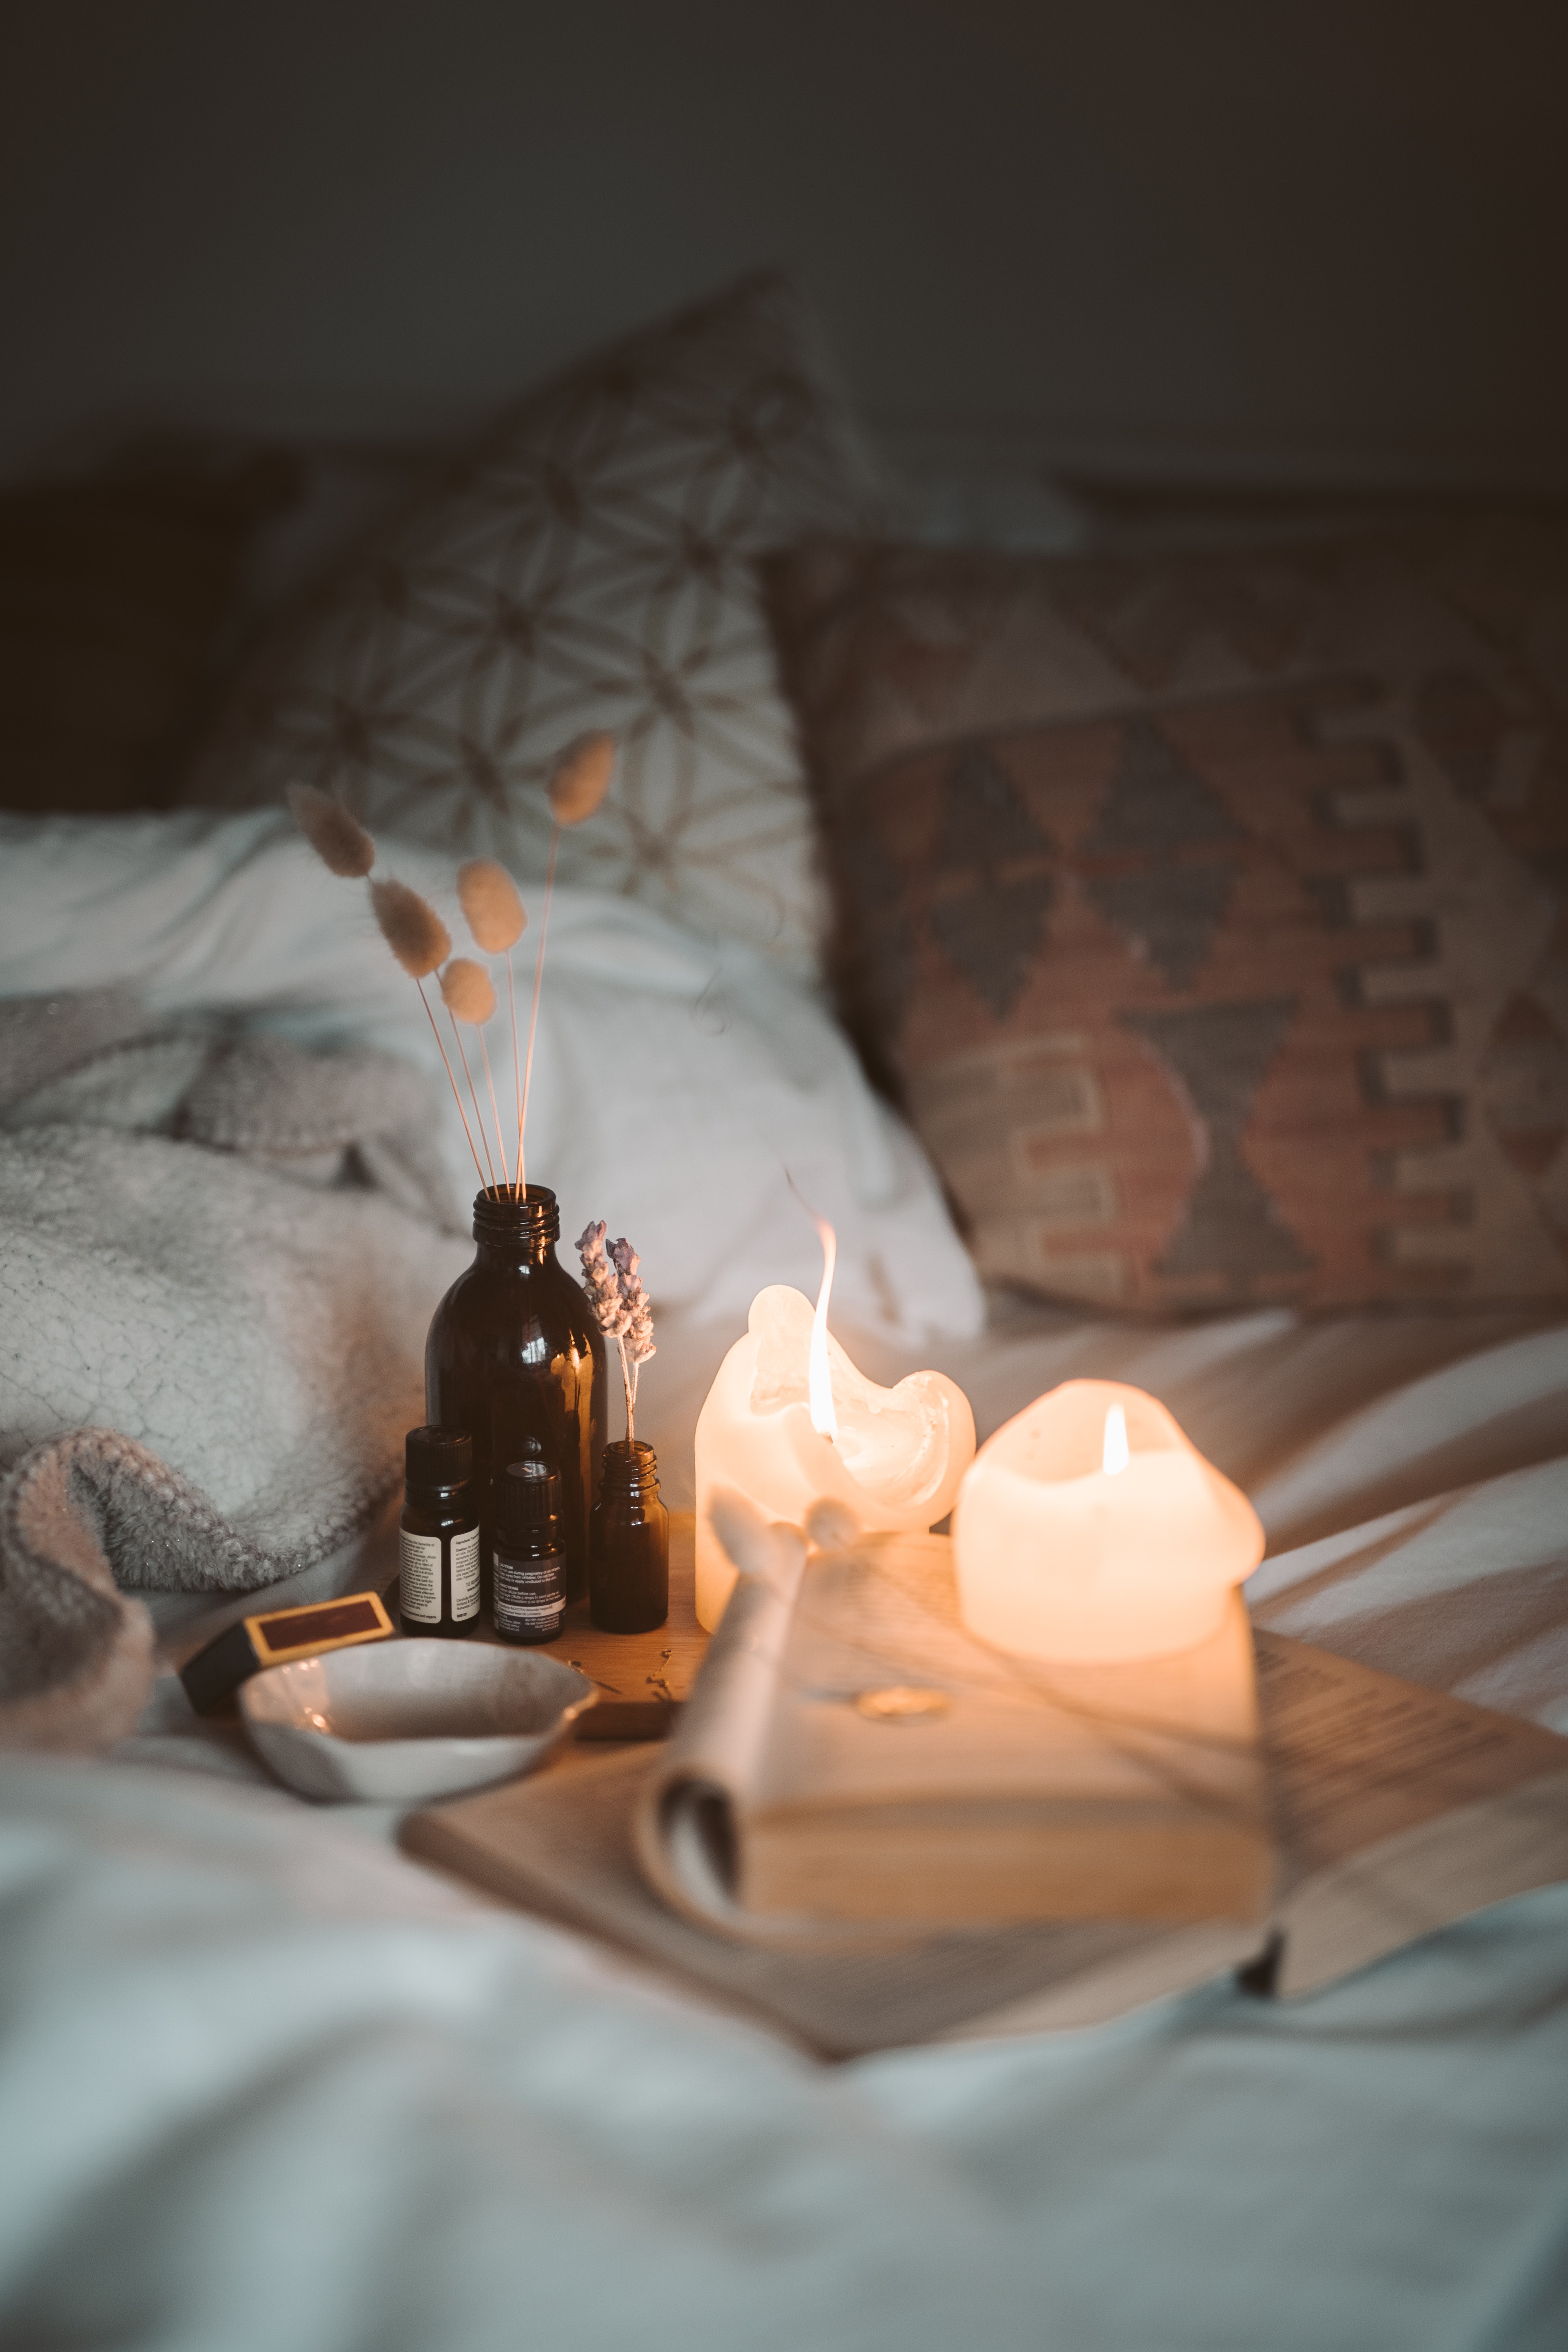 Lighted Candles In The Bedroom · Free Stock Photo